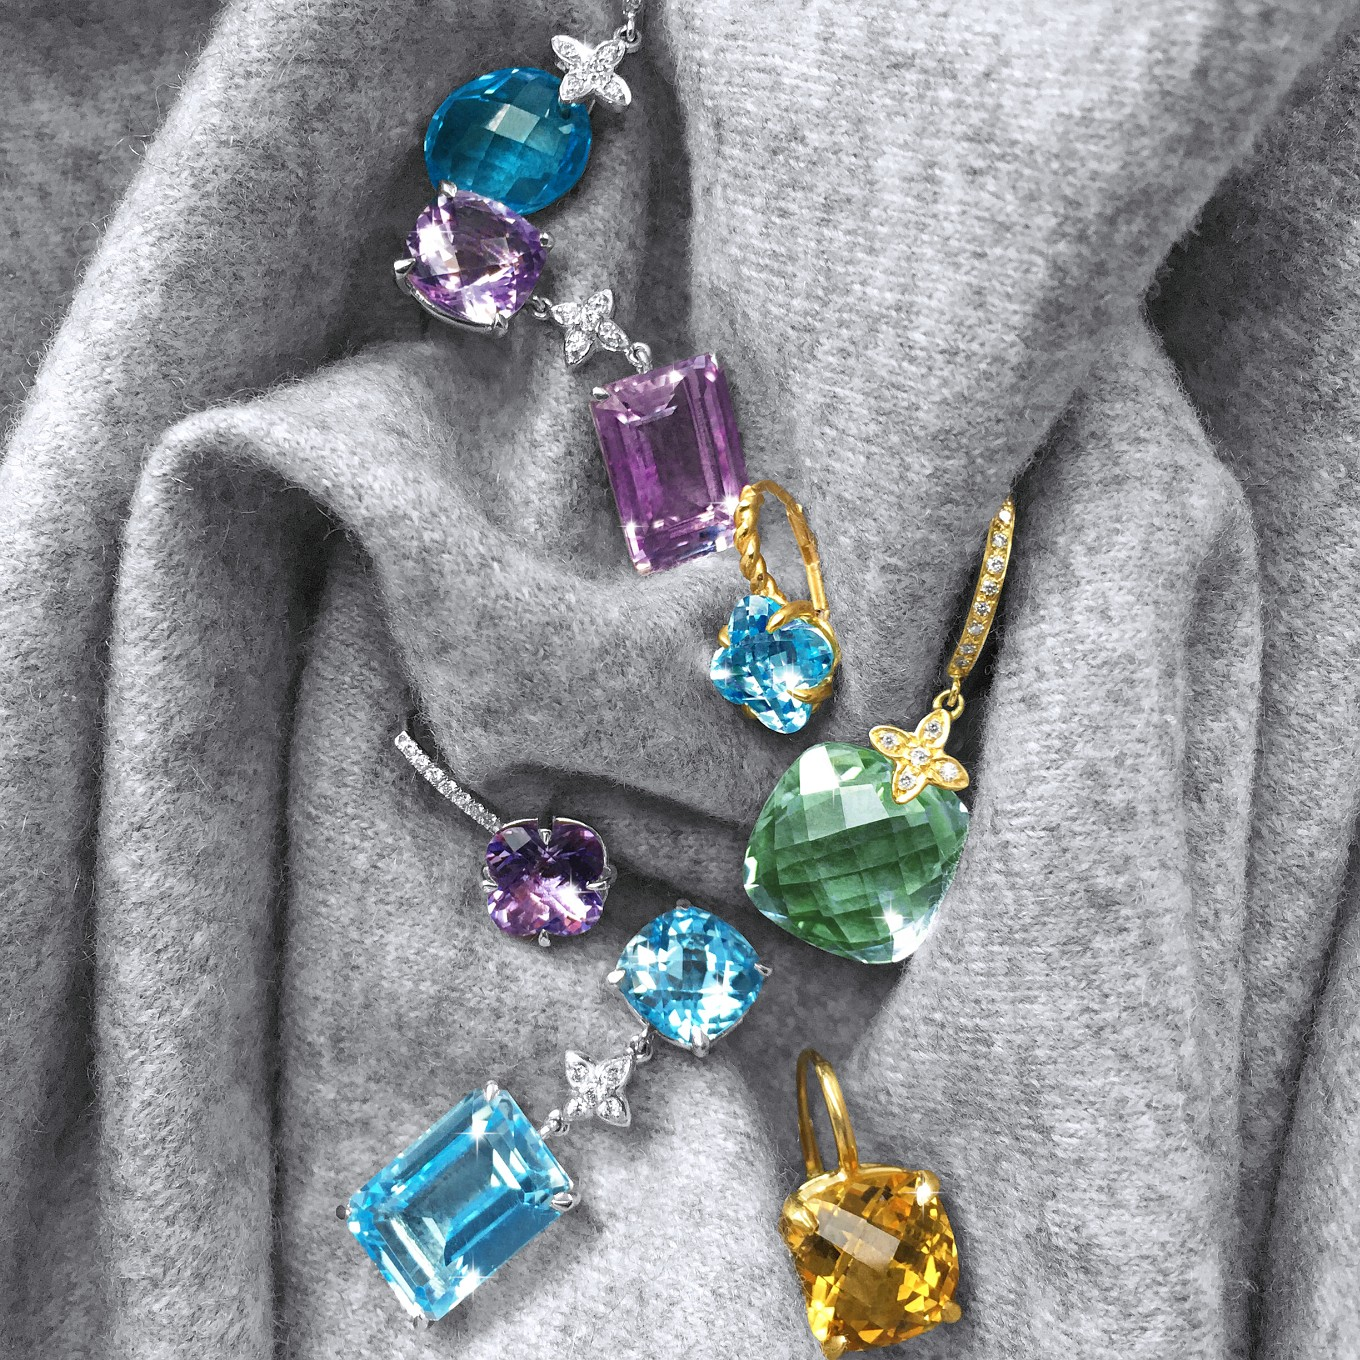 A SELECTION OF AMETHYST, CITRINE, BLUE TOPAZ & GREEN AMETHYST JdJ STUDIO EARRINGS IN WHITE  & YELLOW GOLD & DIAMONDS